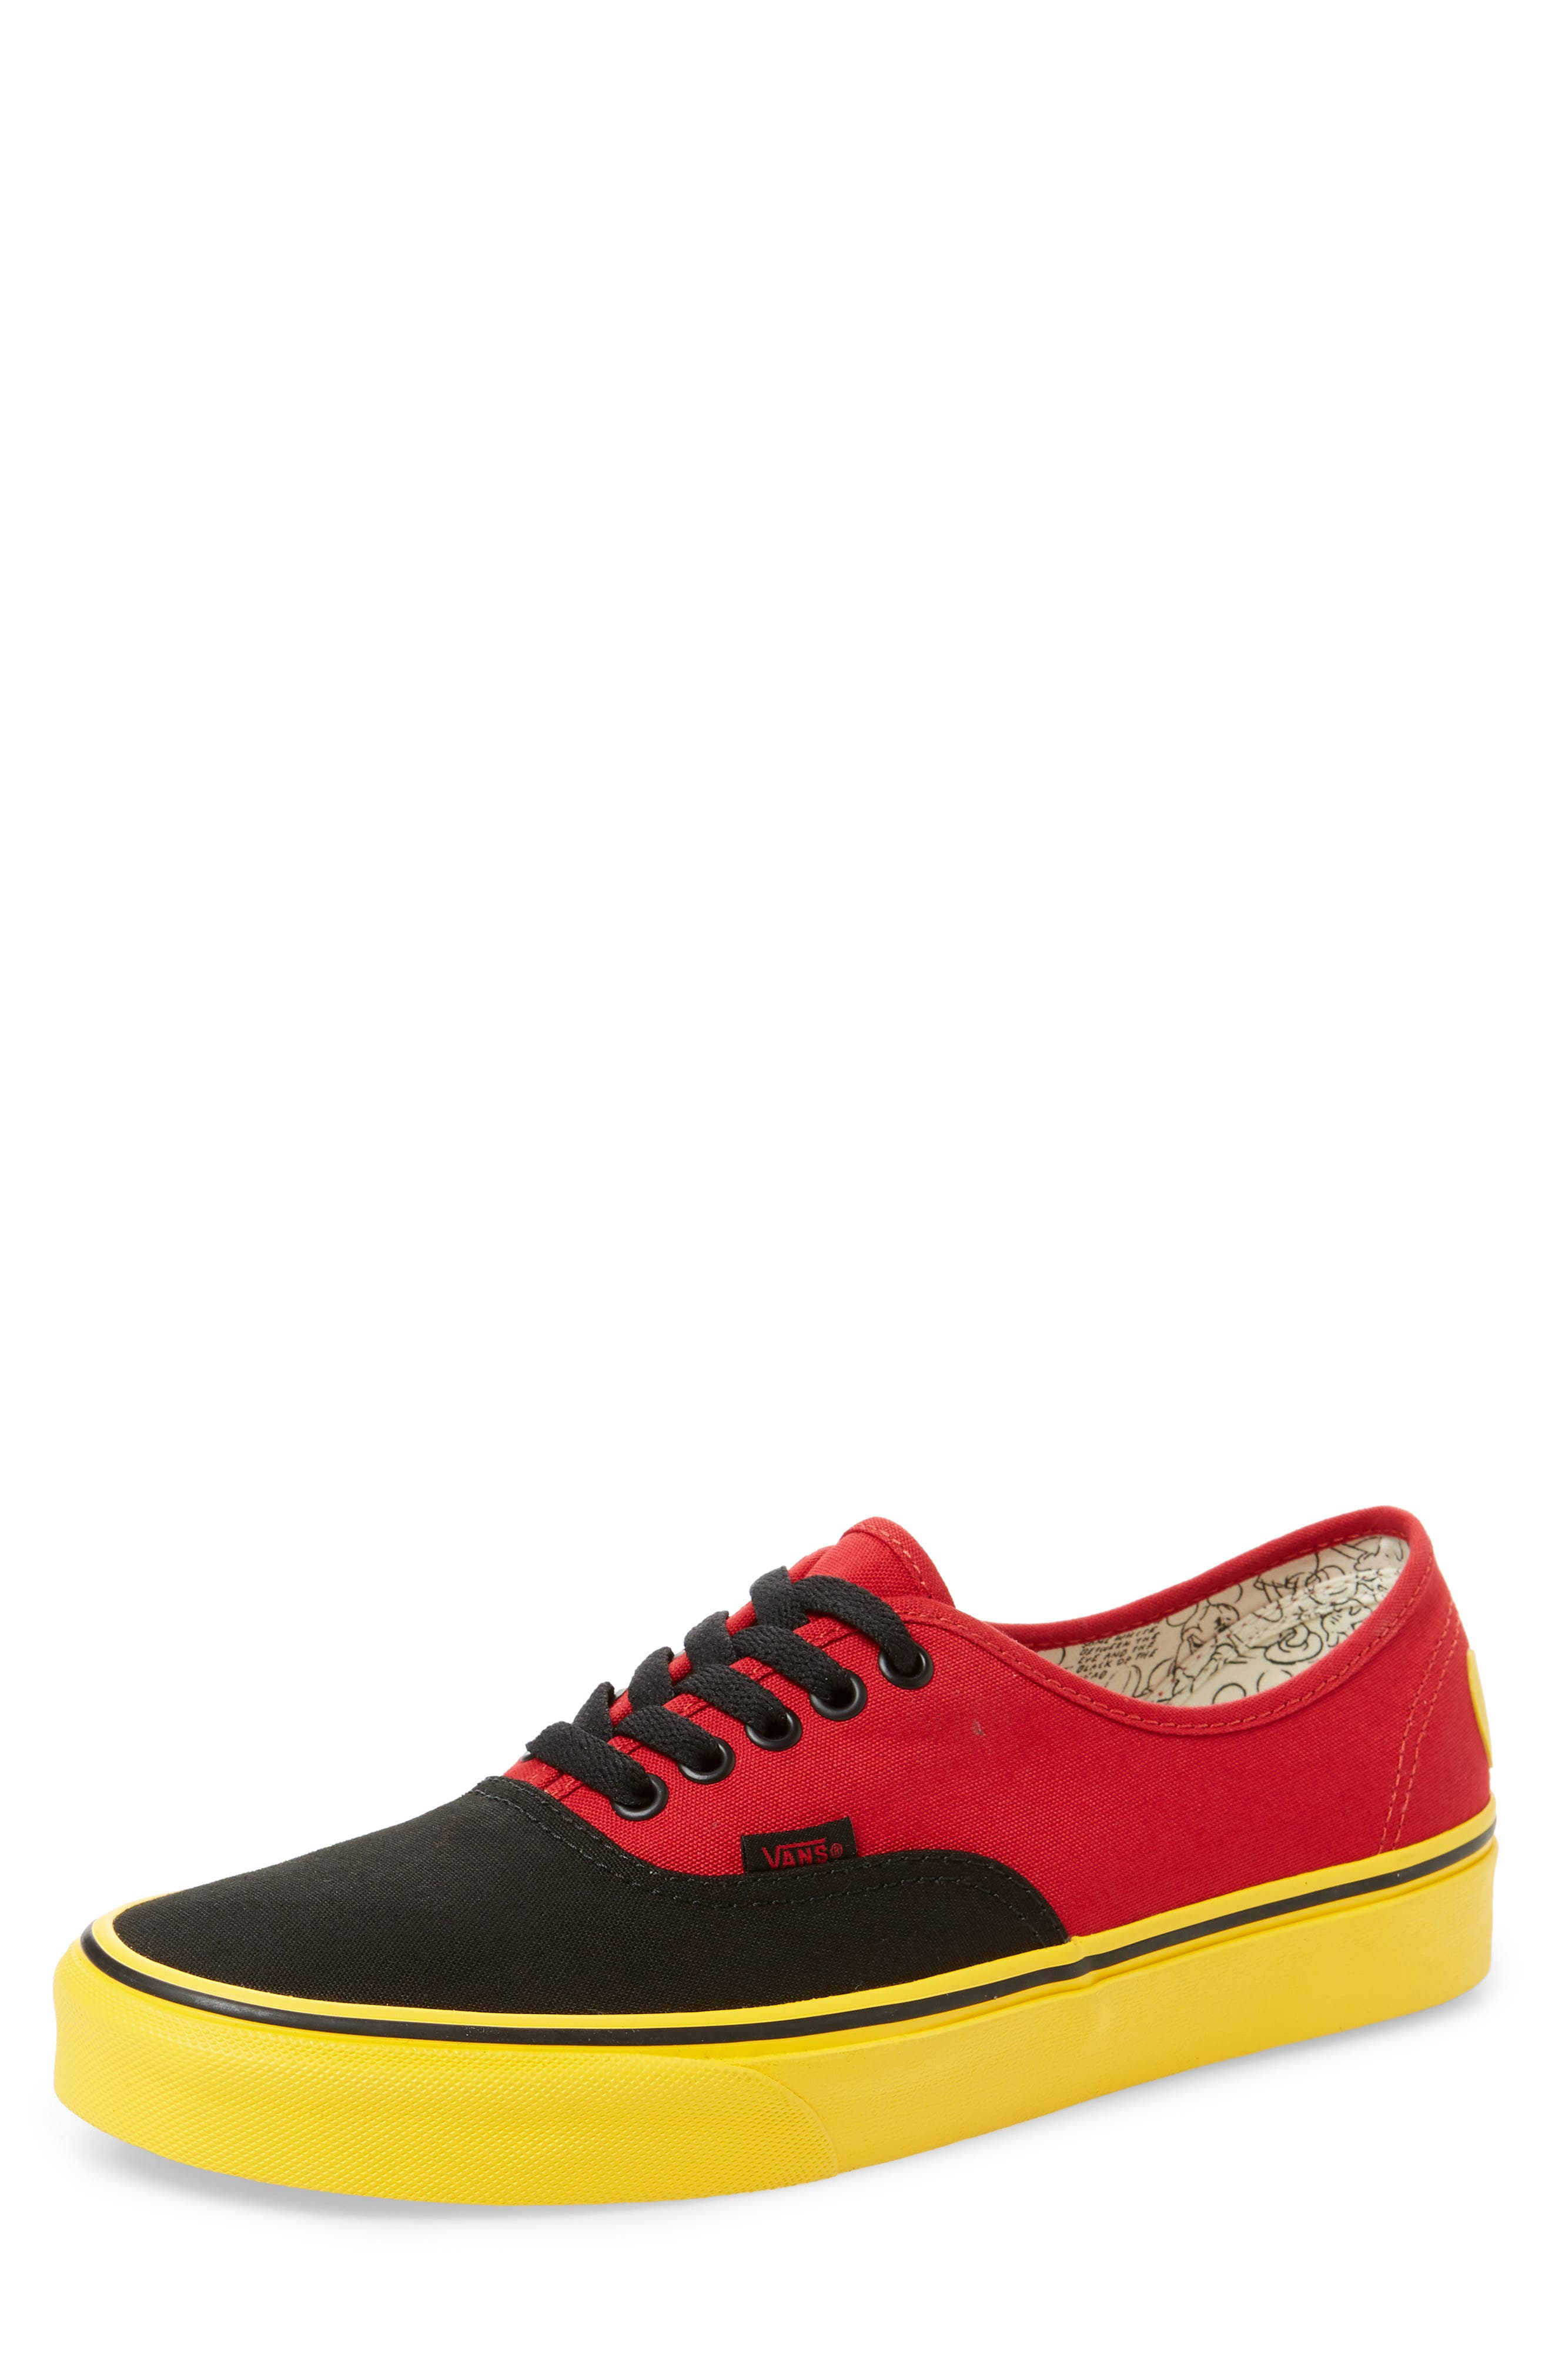 x Disney<sup>®</sup> Authentic Low Top Sneaker,                             Main thumbnail 1, color,                             DISNEY MICKEY/ RED/ YELLOW